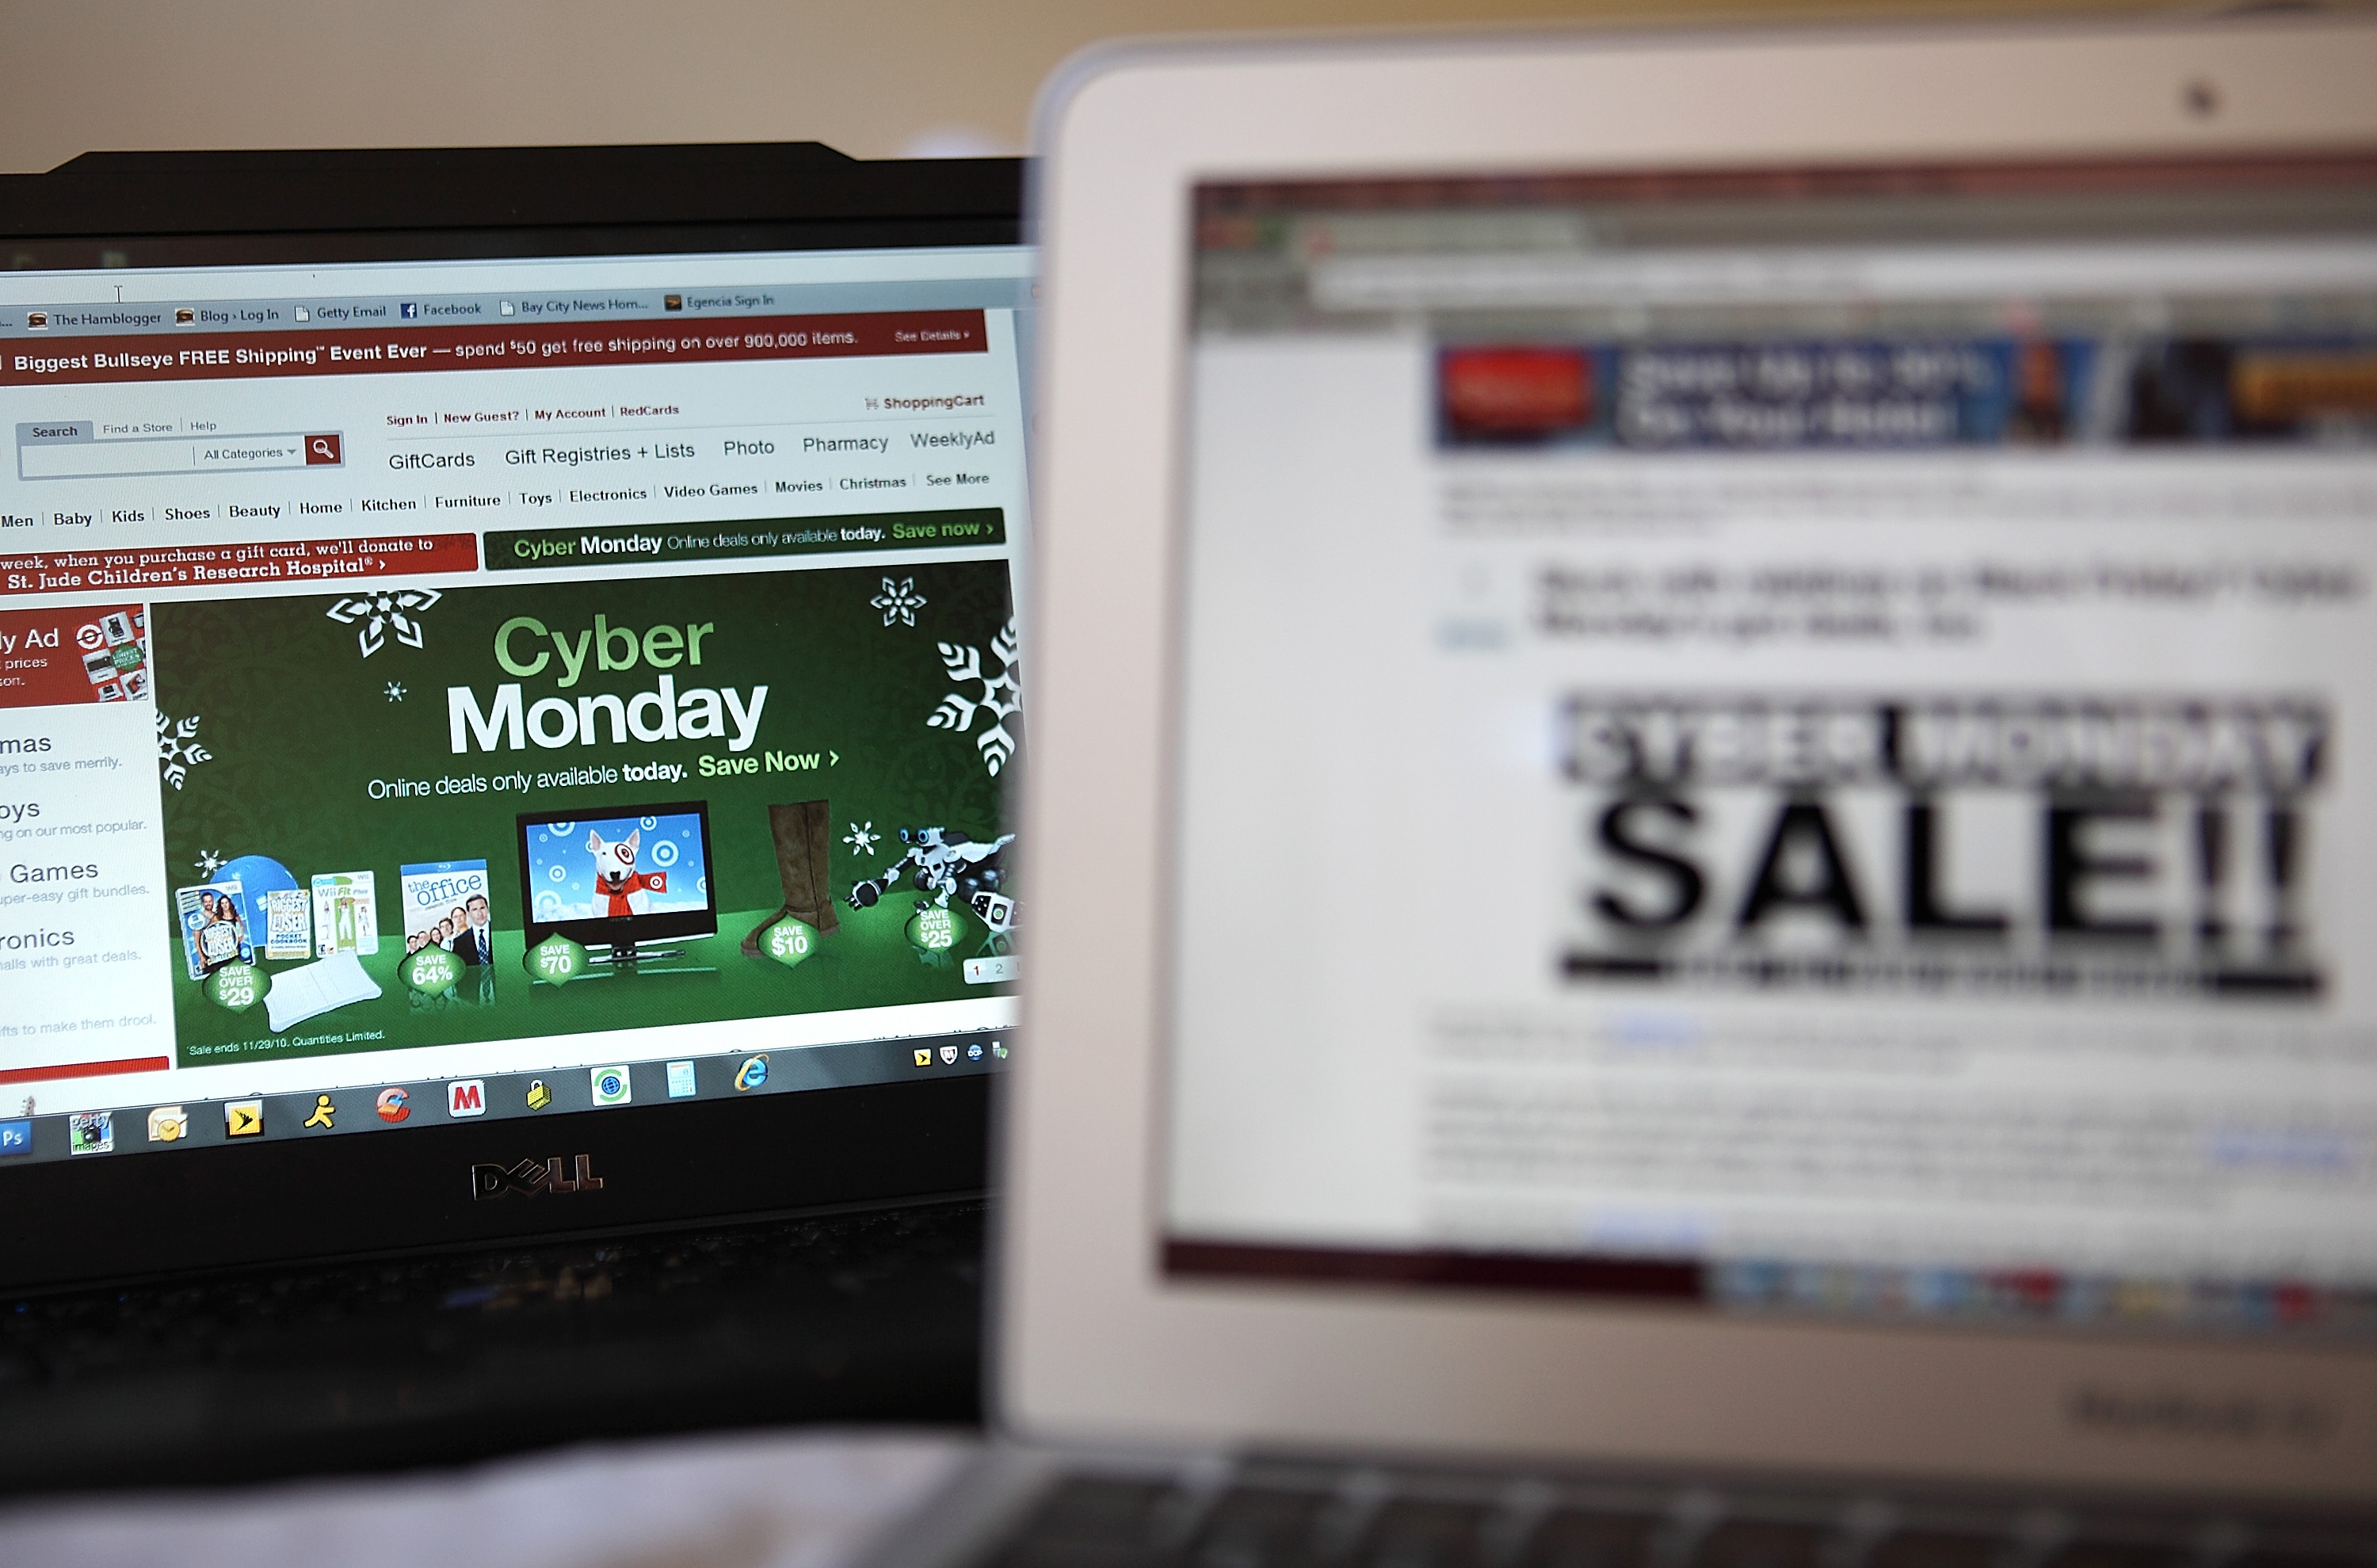 Tips to avoid getting scammed on Cyber Monday